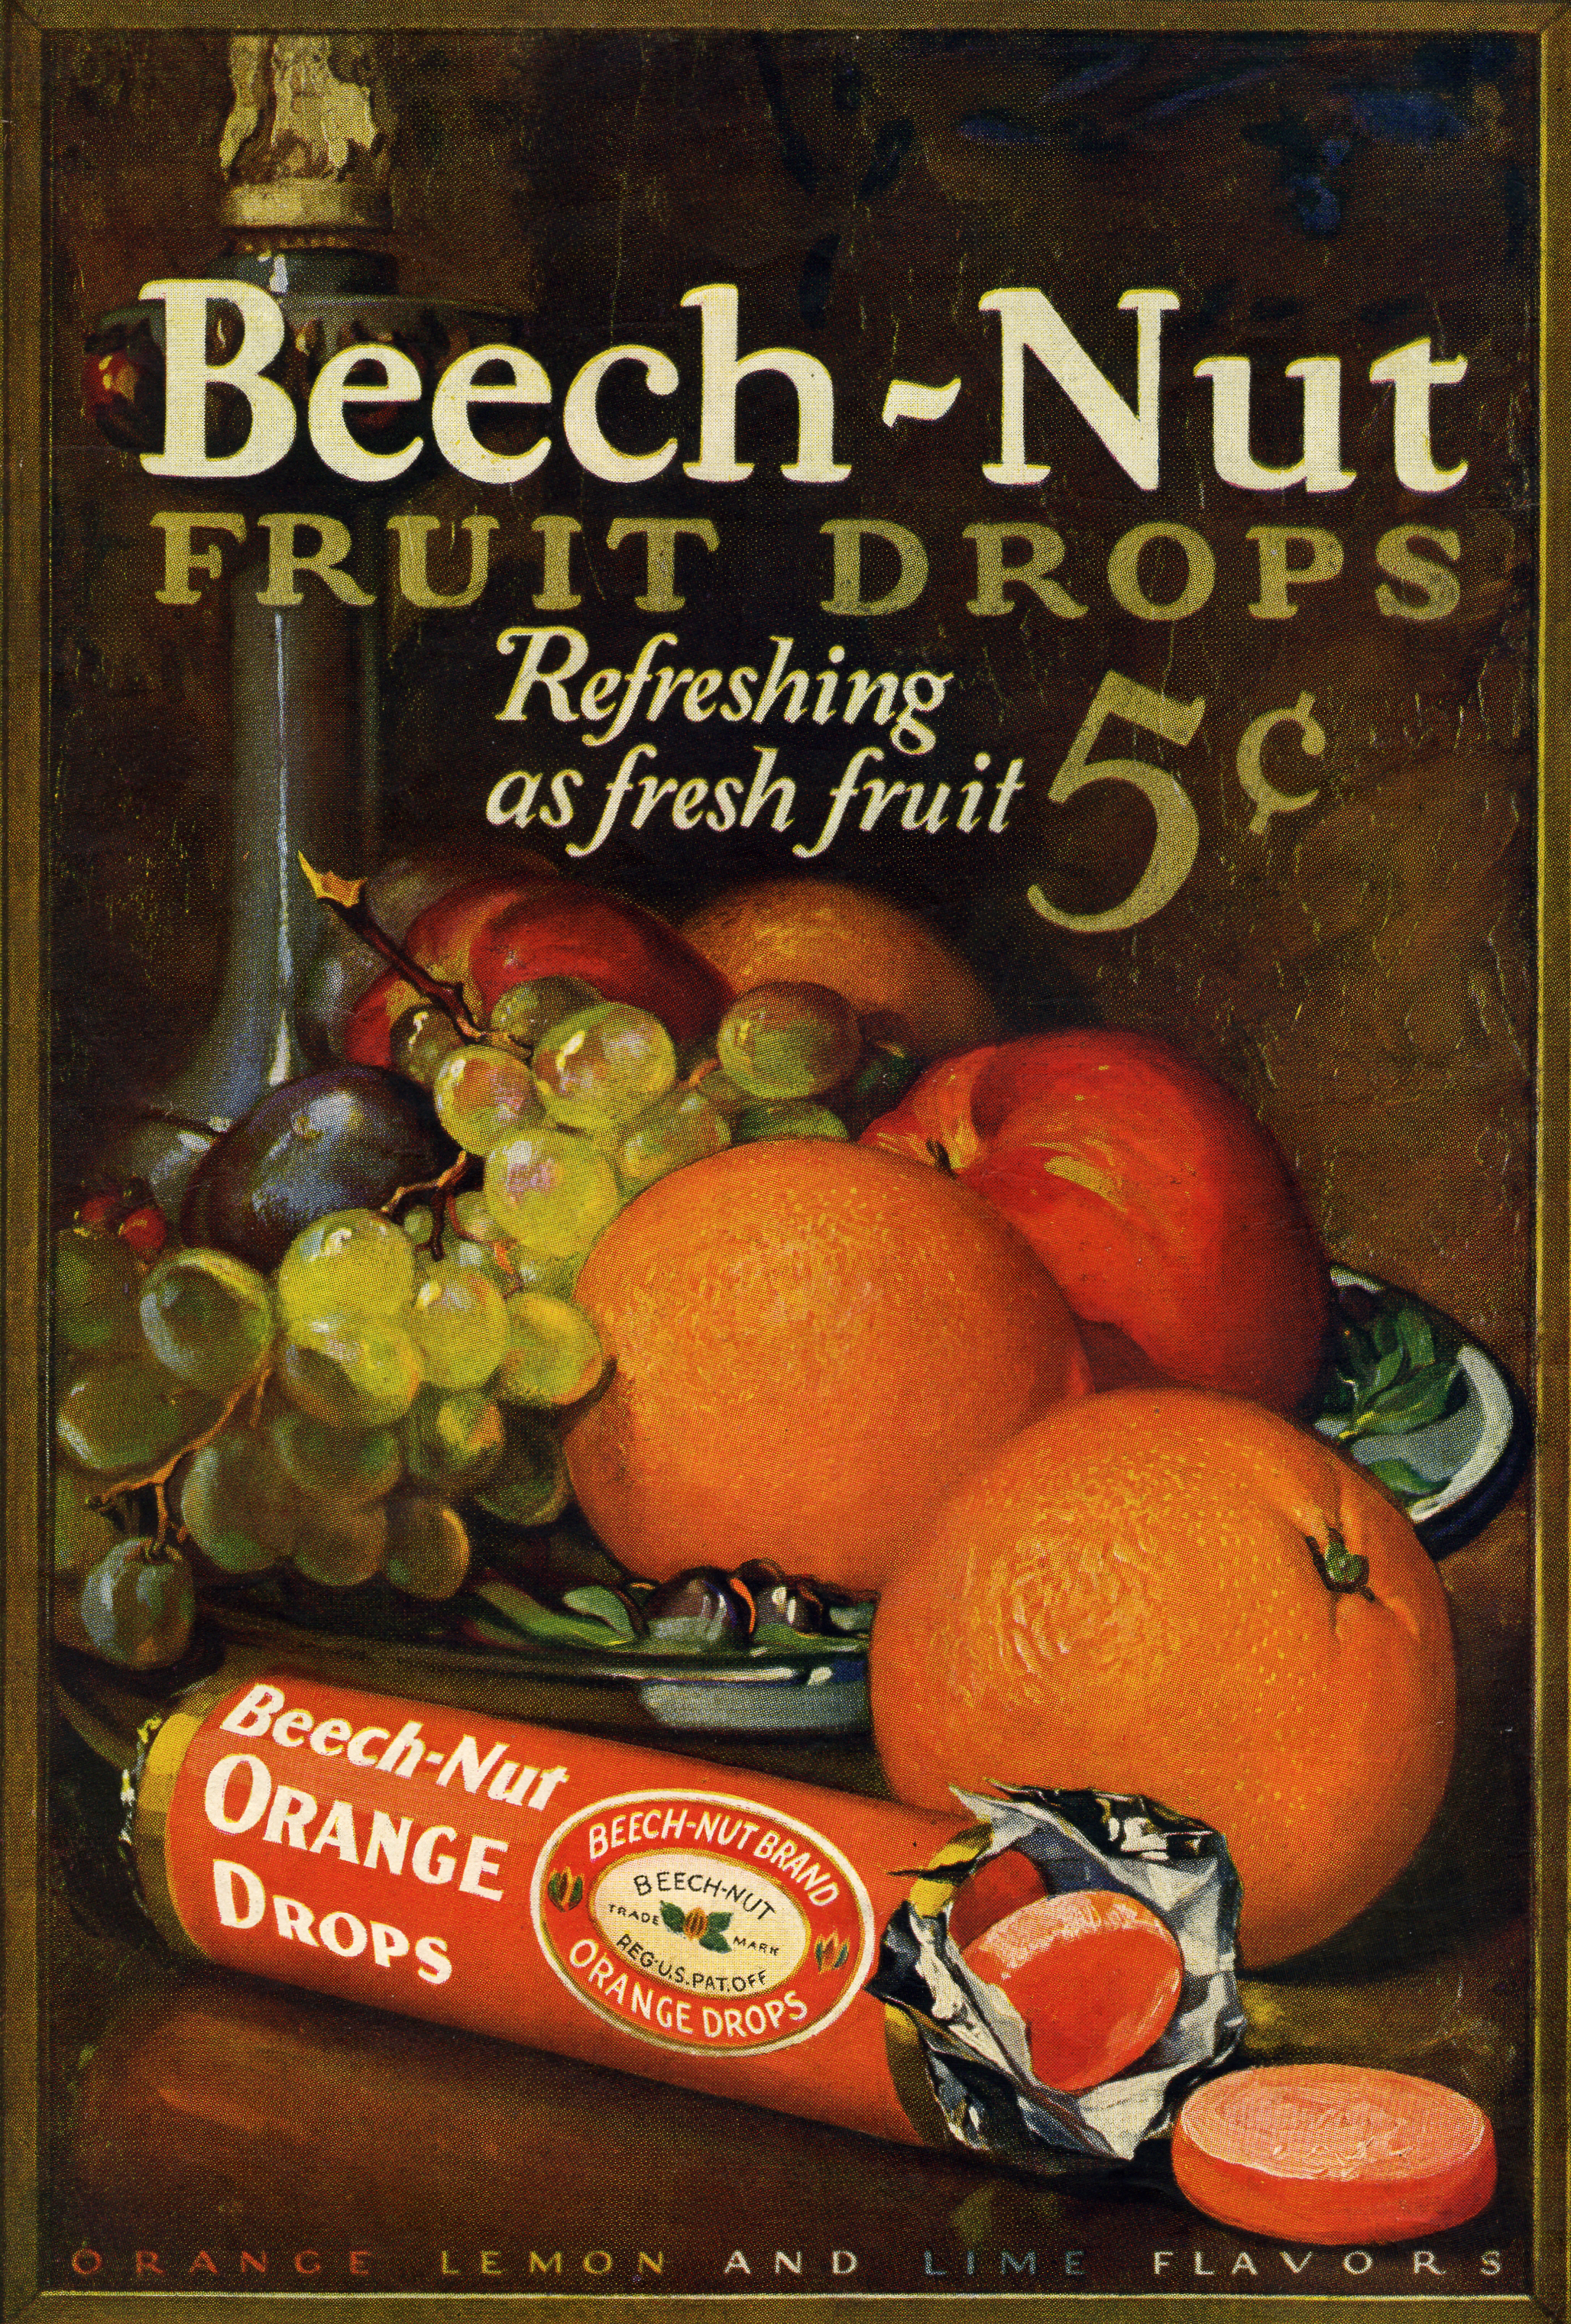 Beech-Nut Fruit Drops - 1931